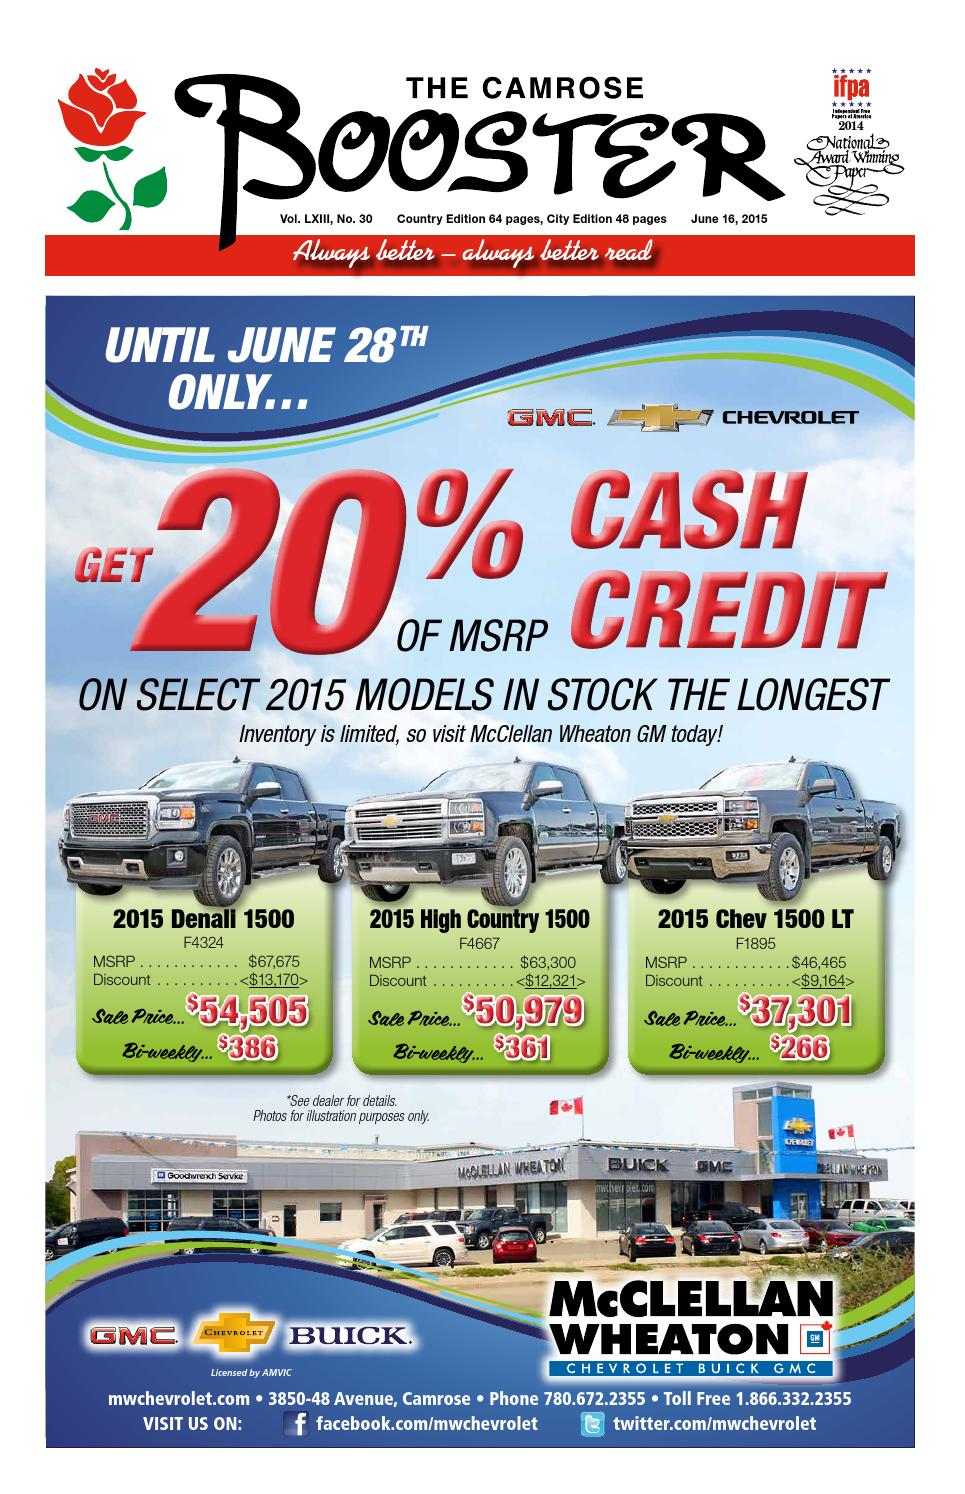 June 16 2015 Camrose Booster By The Camrose Booster Issuu